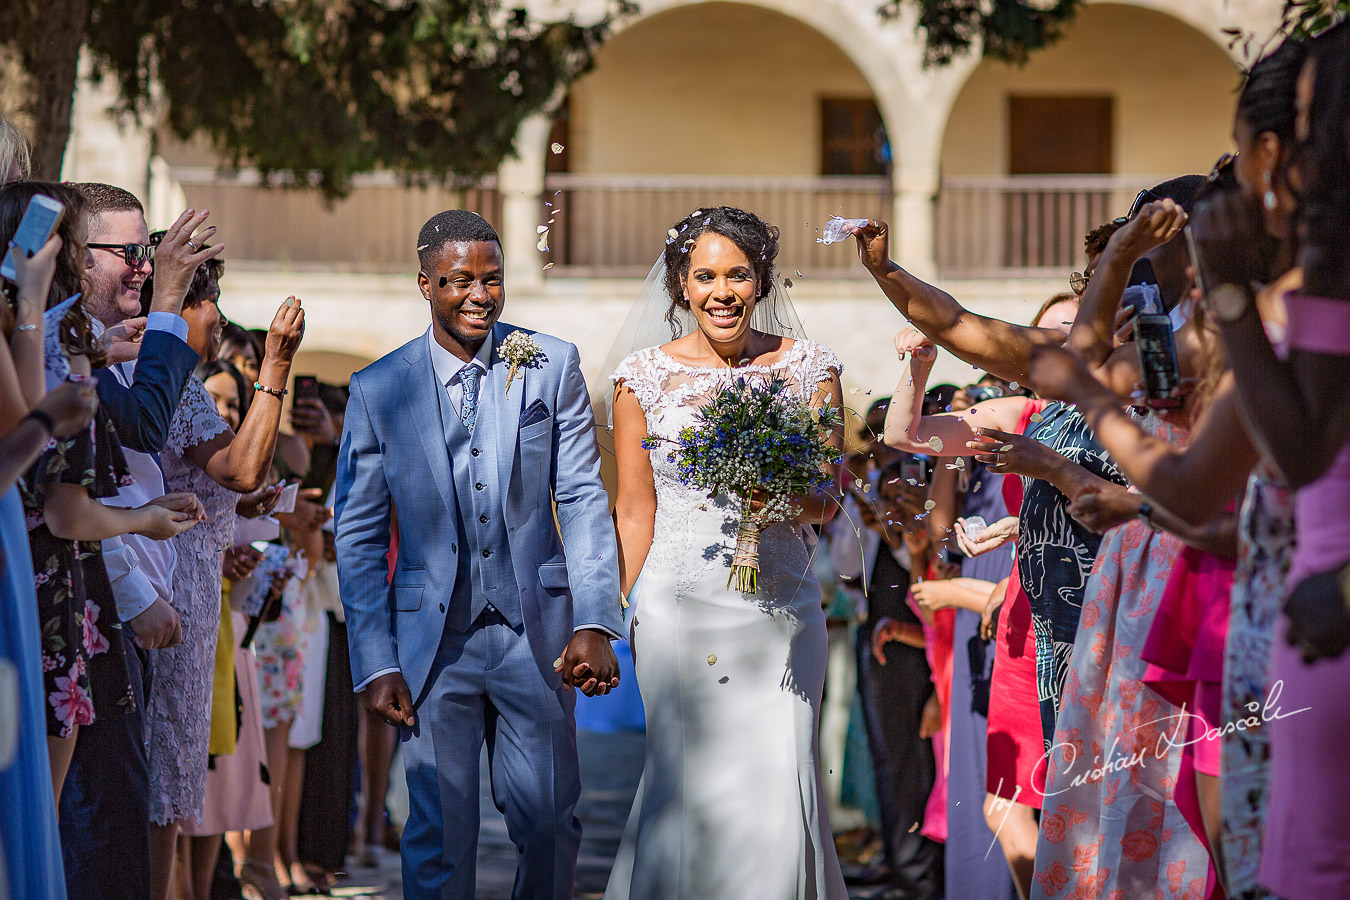 Beautiful confetti photos Beautiful ceremony moments captured at a wedding at Minthis Hills in Cyprus, by Cristian Dascalu.